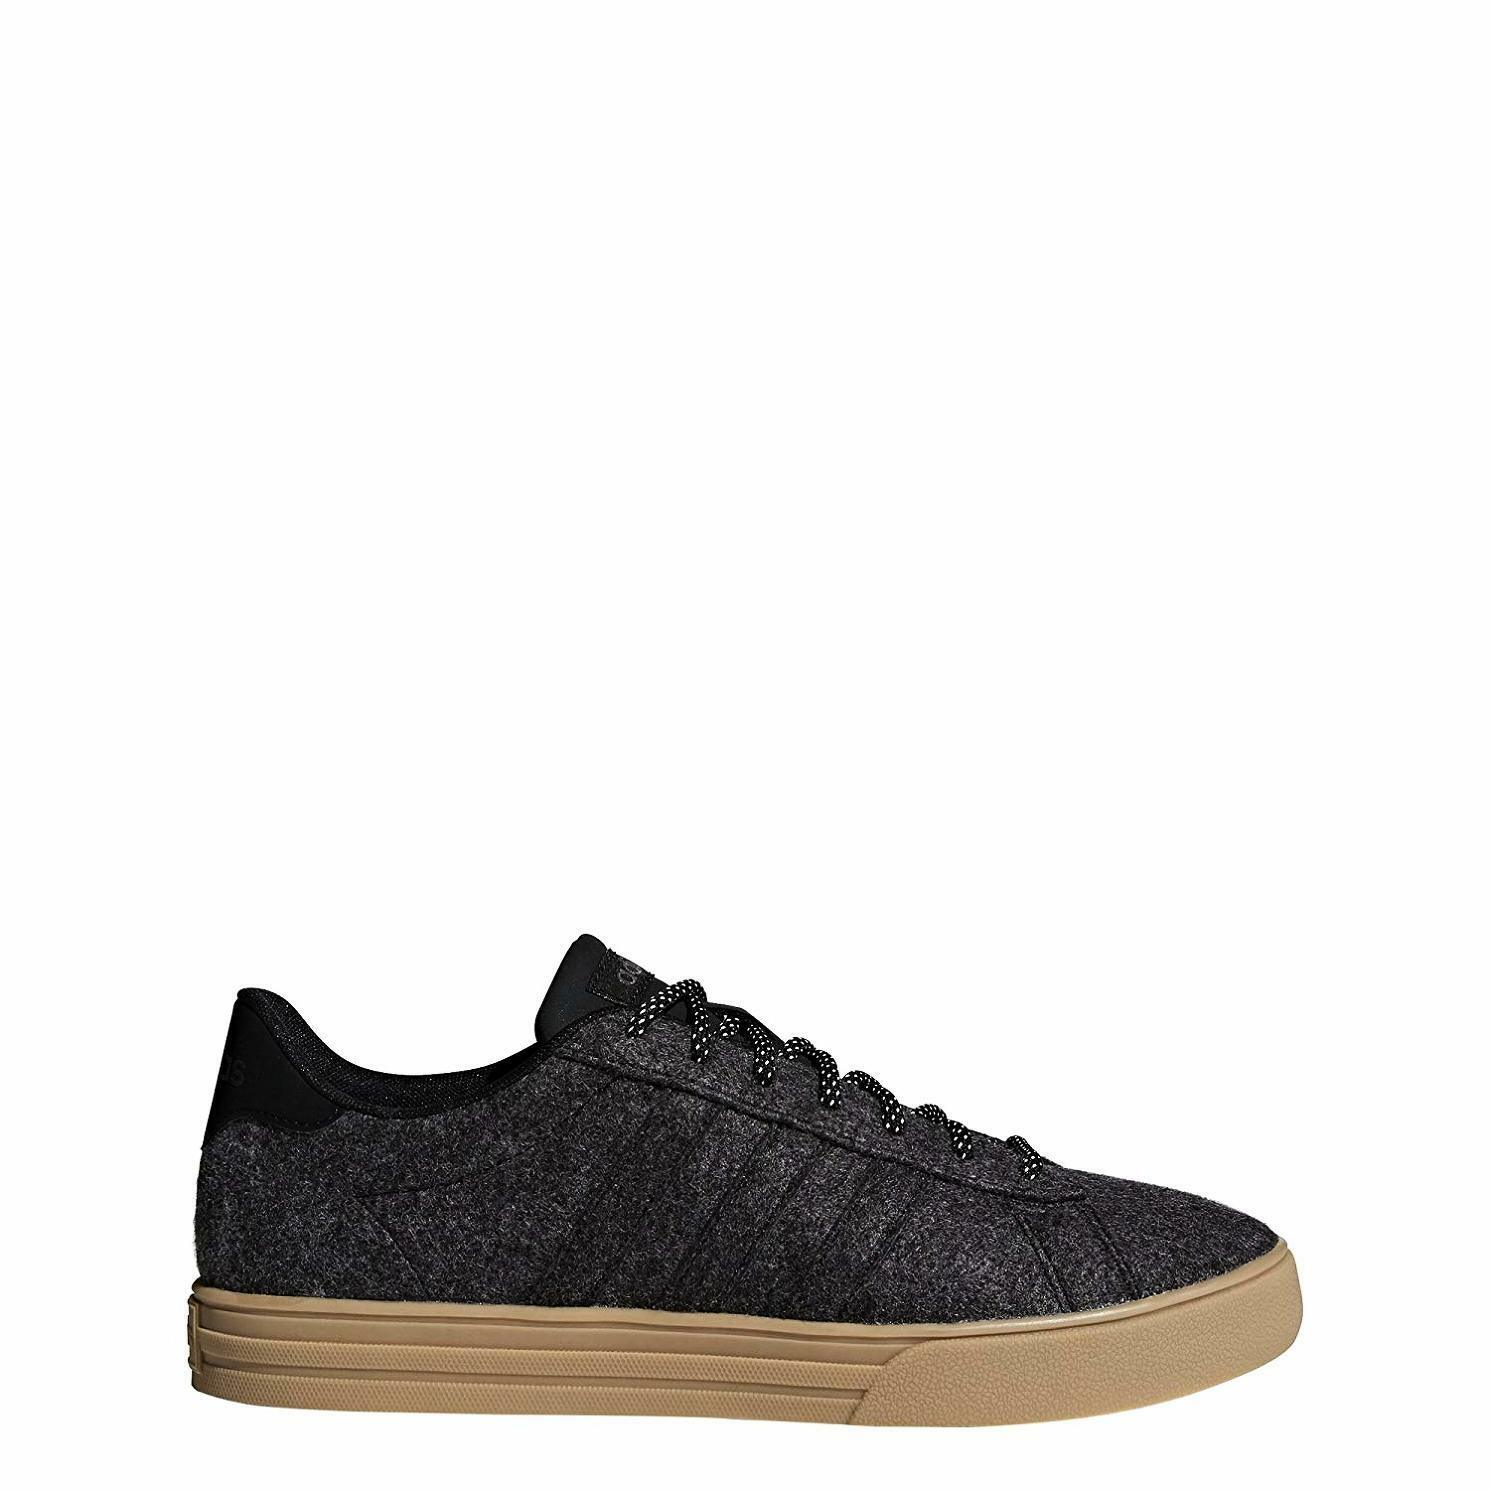 Adidas Men's Daily 2.0 Sneaker - Choose SZ color